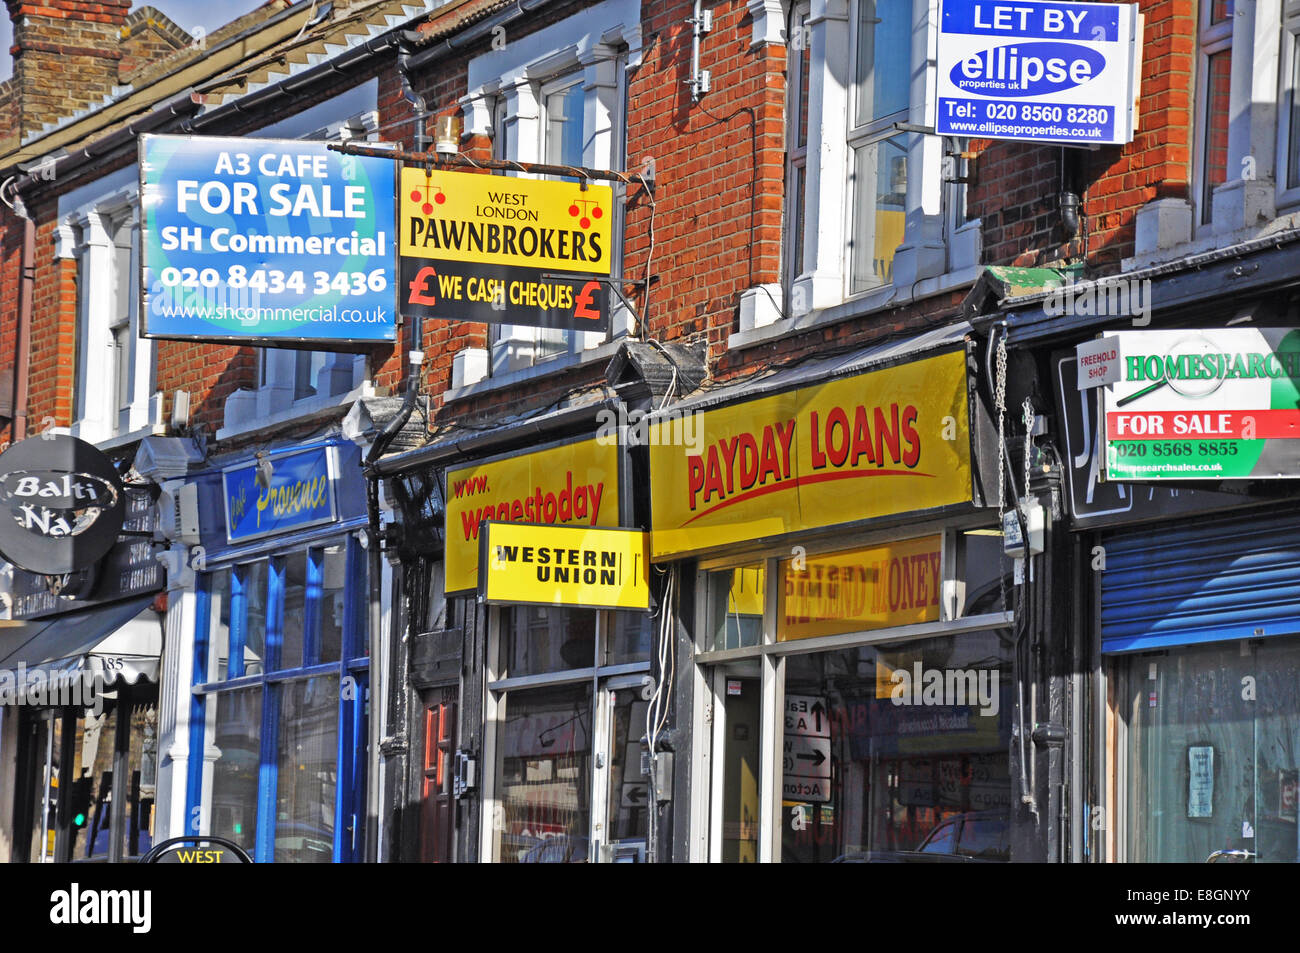 Payday loans and various other shops and lettings signs on South Ealing Road, London W5, England, UK. - Stock Image